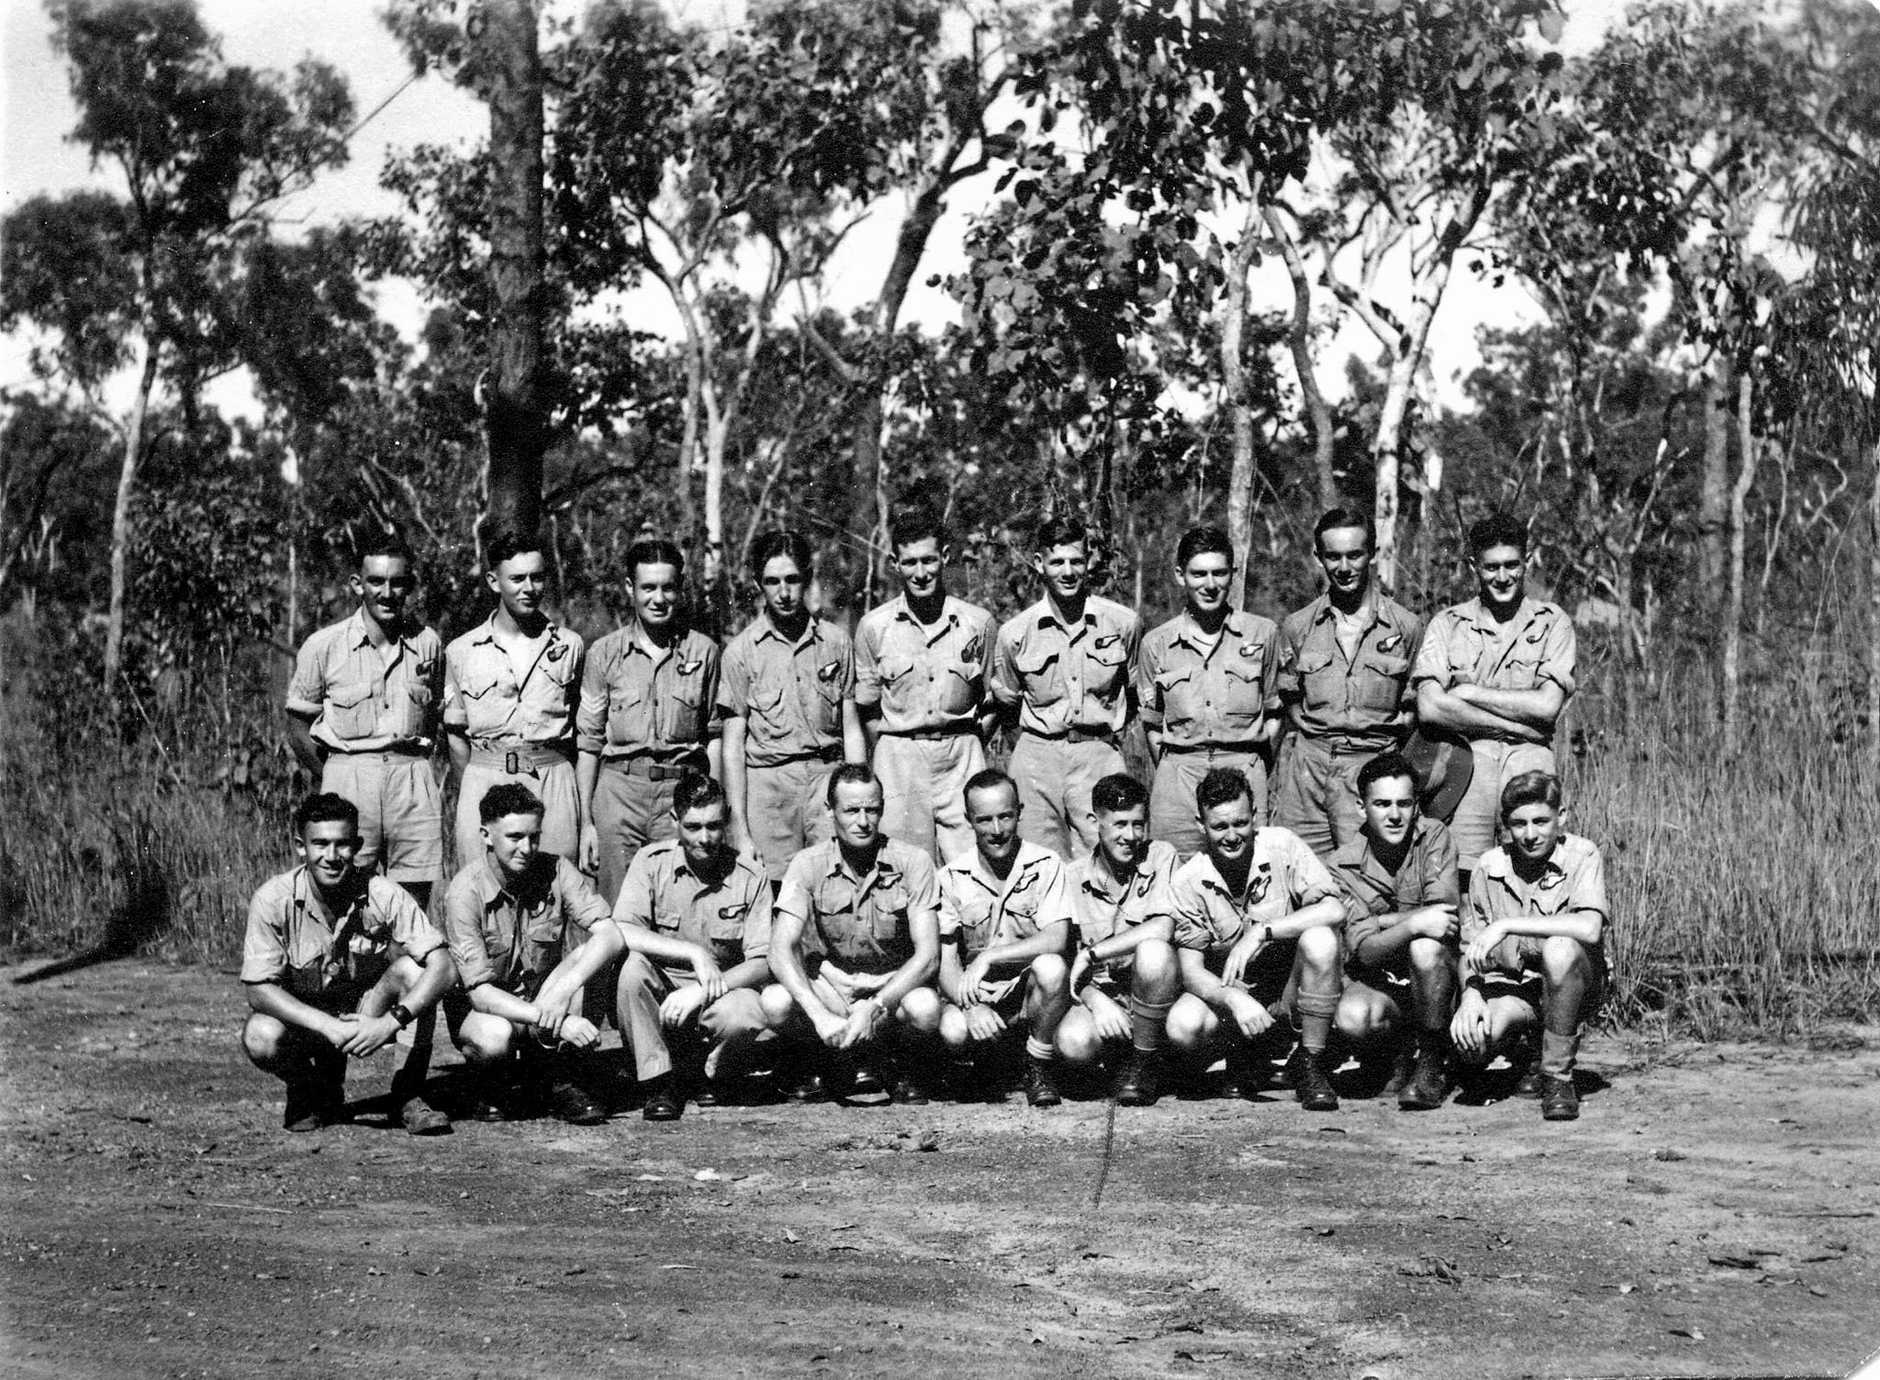 Don Mackay with a group of RAAF airgunners in 1944.